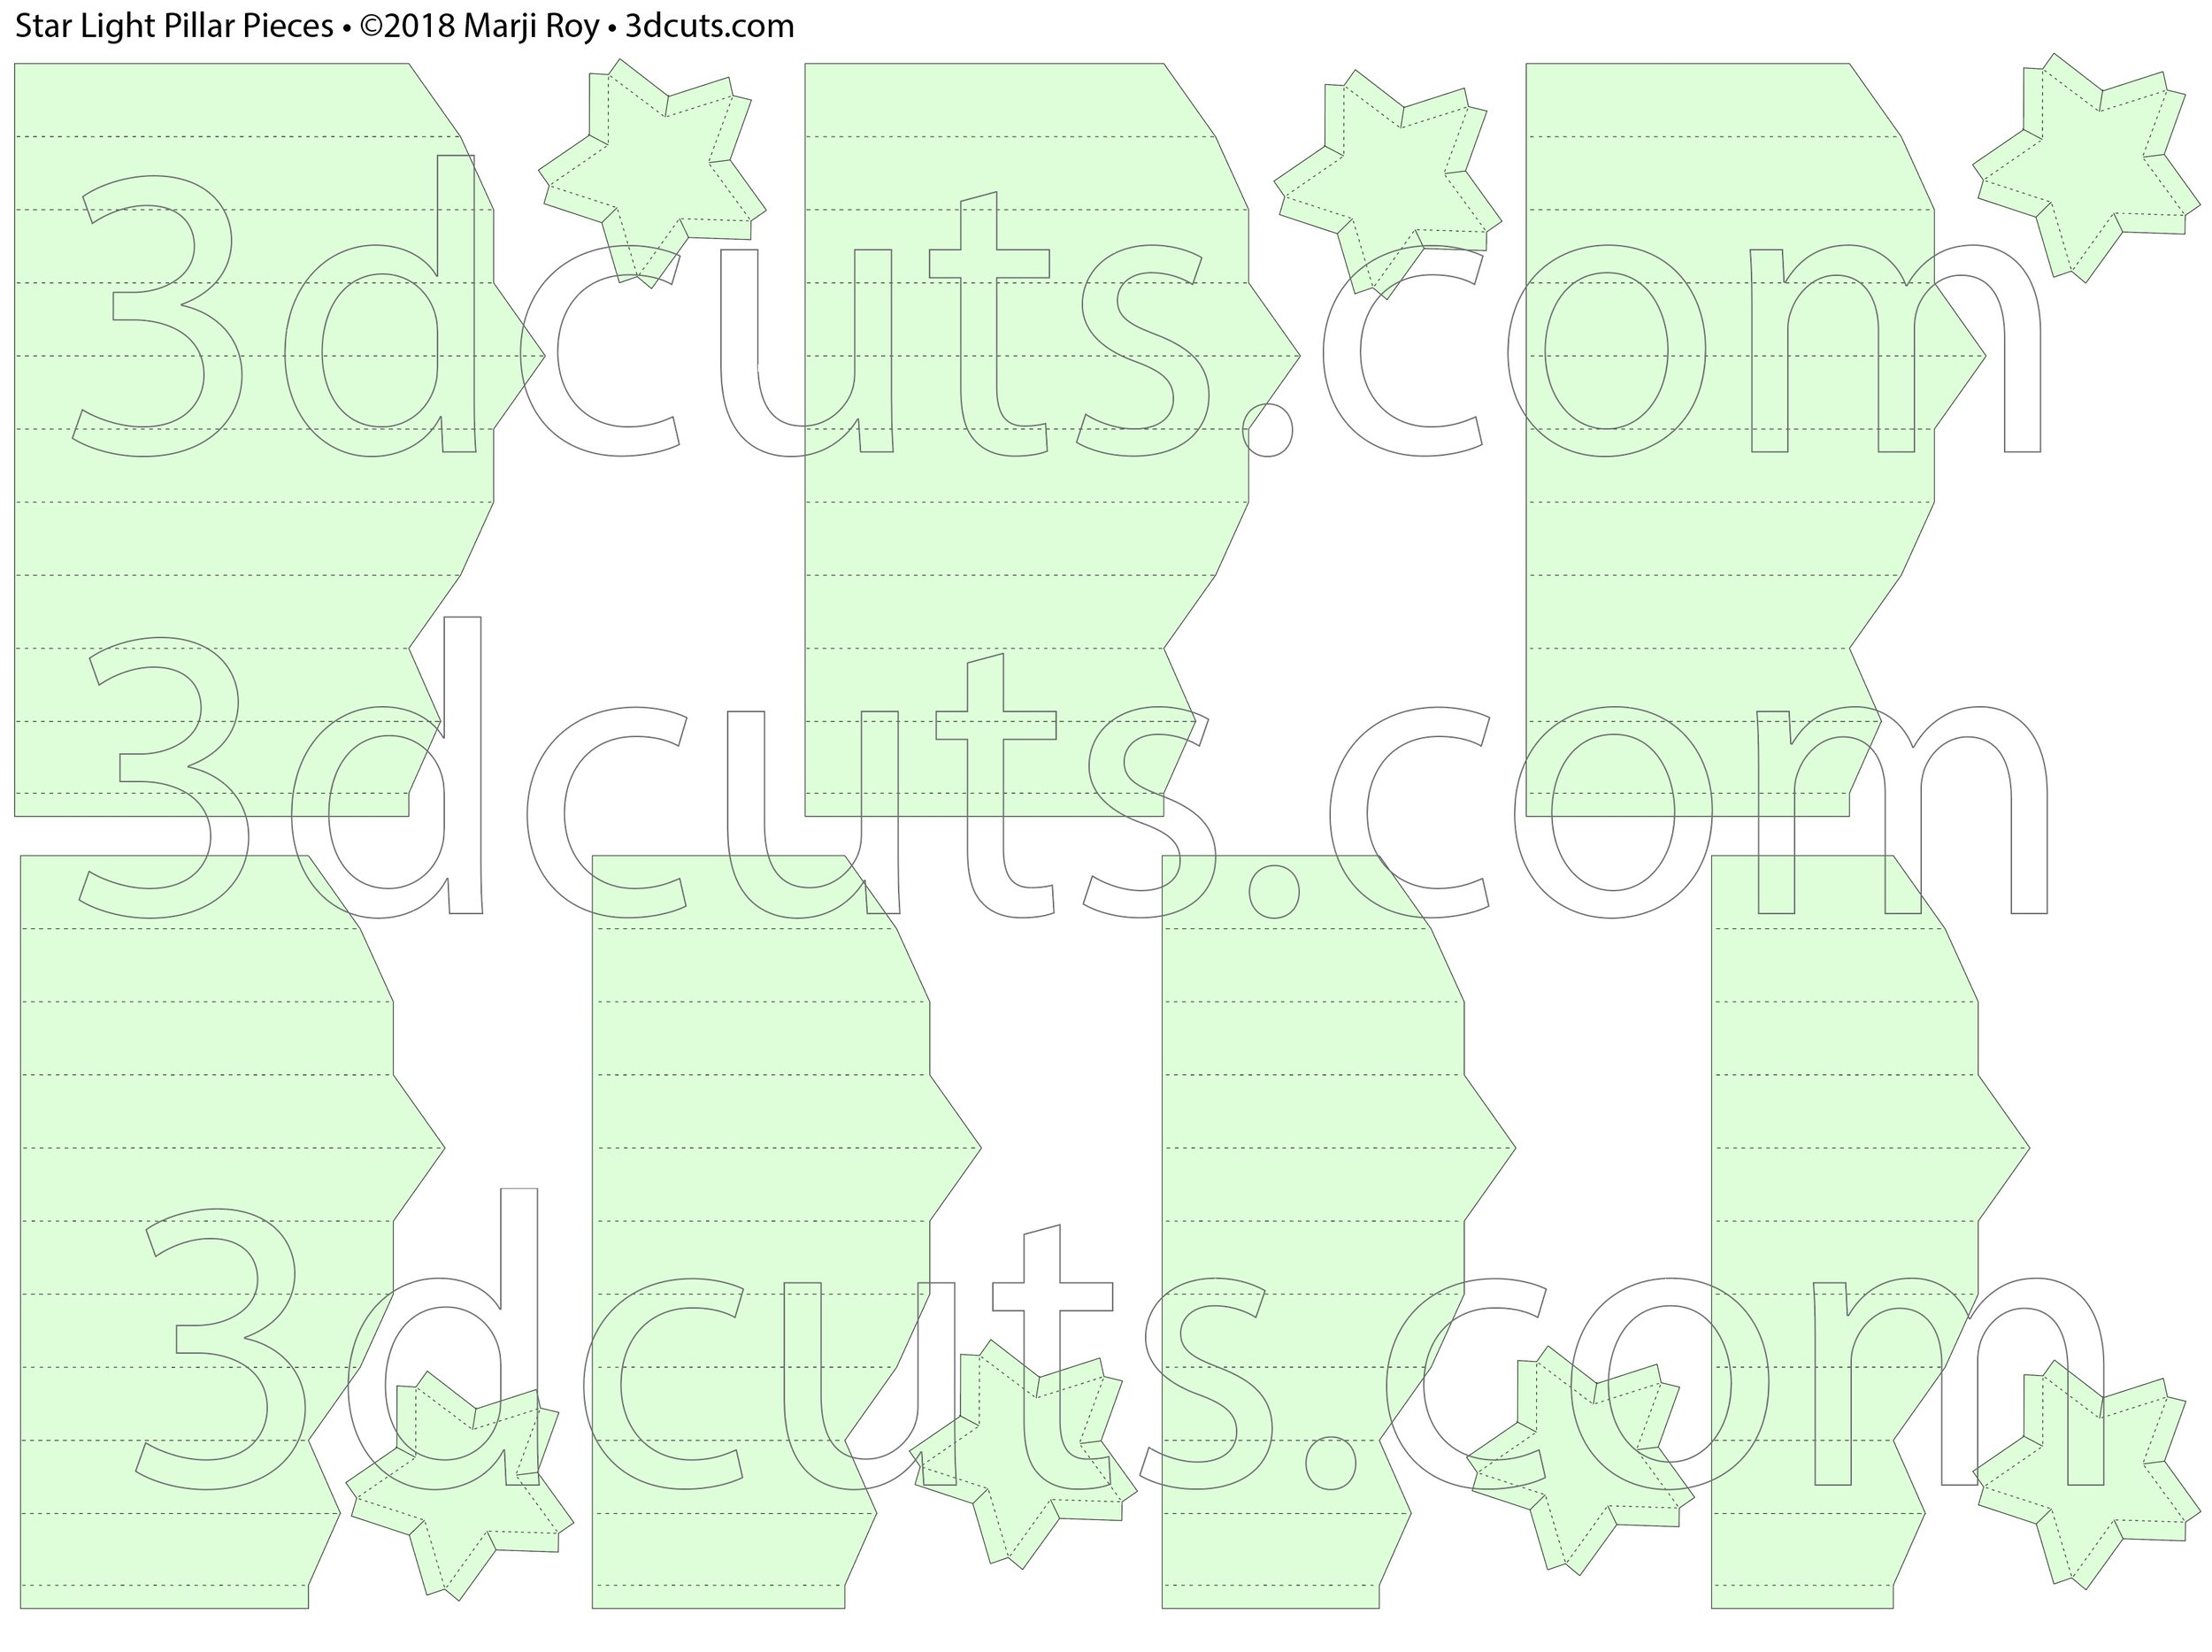 Star Light Pillars by 3dCuts.com, by Marji Roy, Cutting files in svg, dxf, png and pdf formats for use with Silhouette, Cricut and Brother cutting machines, paper crafting files, SVG Files